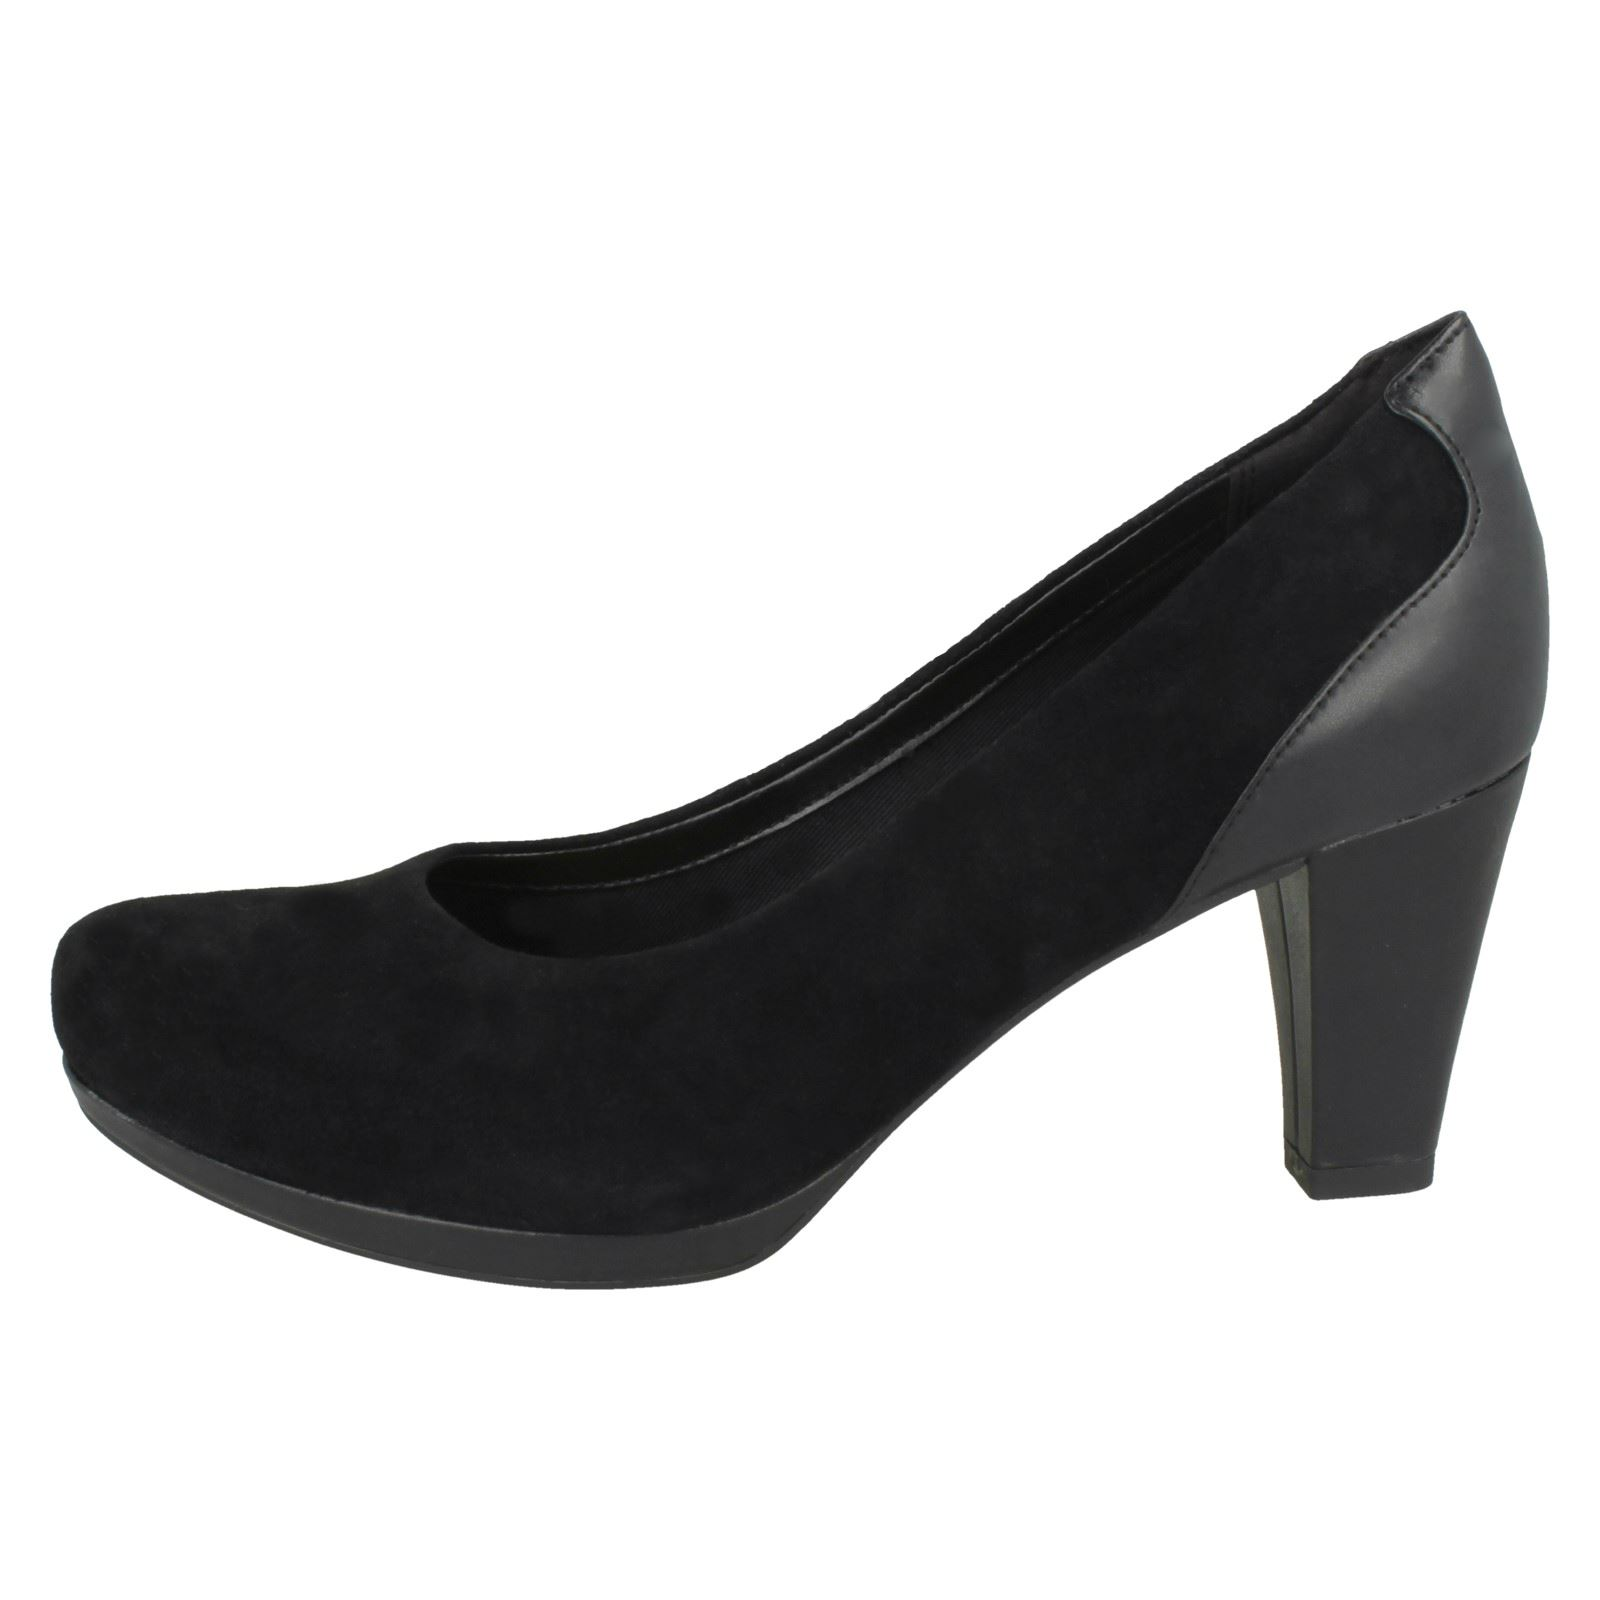 92d1f8eda Clarks Chorus Chic - Black Suede Womens HEELS 5 UK E 21192128. About this  product. Picture 1 of 10  Picture 2 of 10  Picture 3 of 10 ...